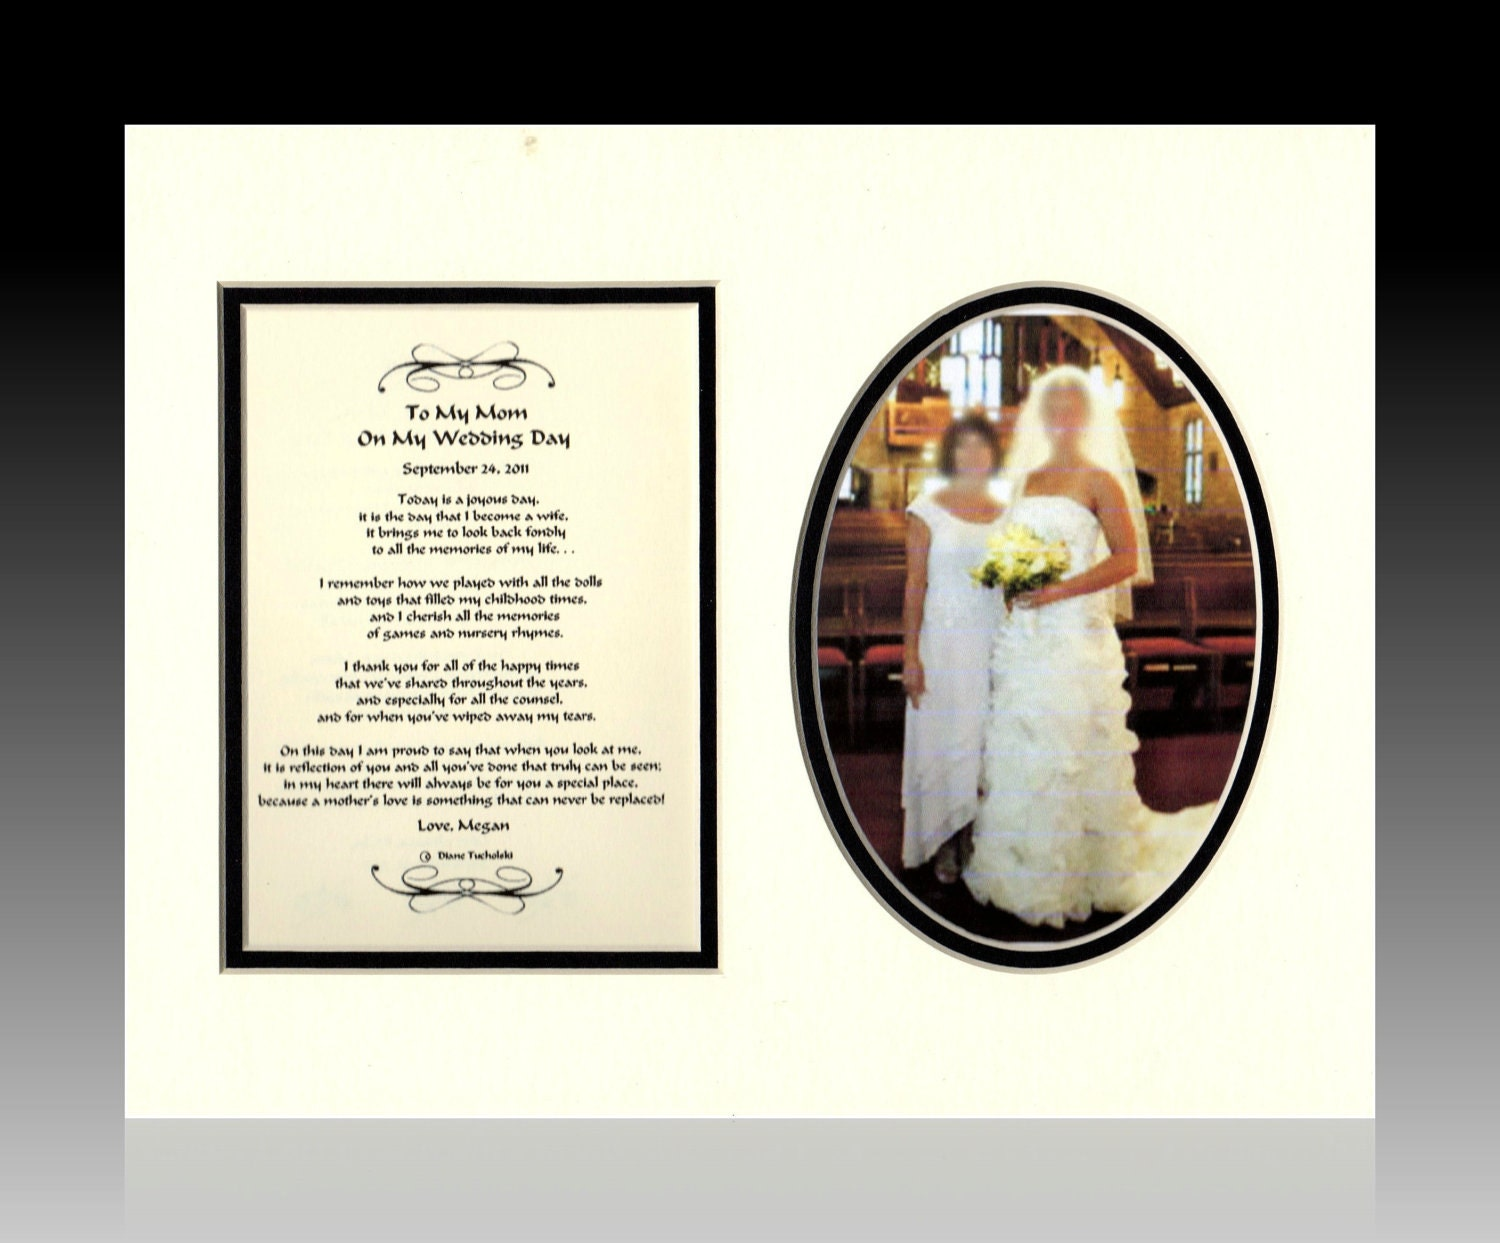 Wedding Keepsake Gifts For The Bride : Wedding Mother of The Bride Gift Personalized To My Mom on My